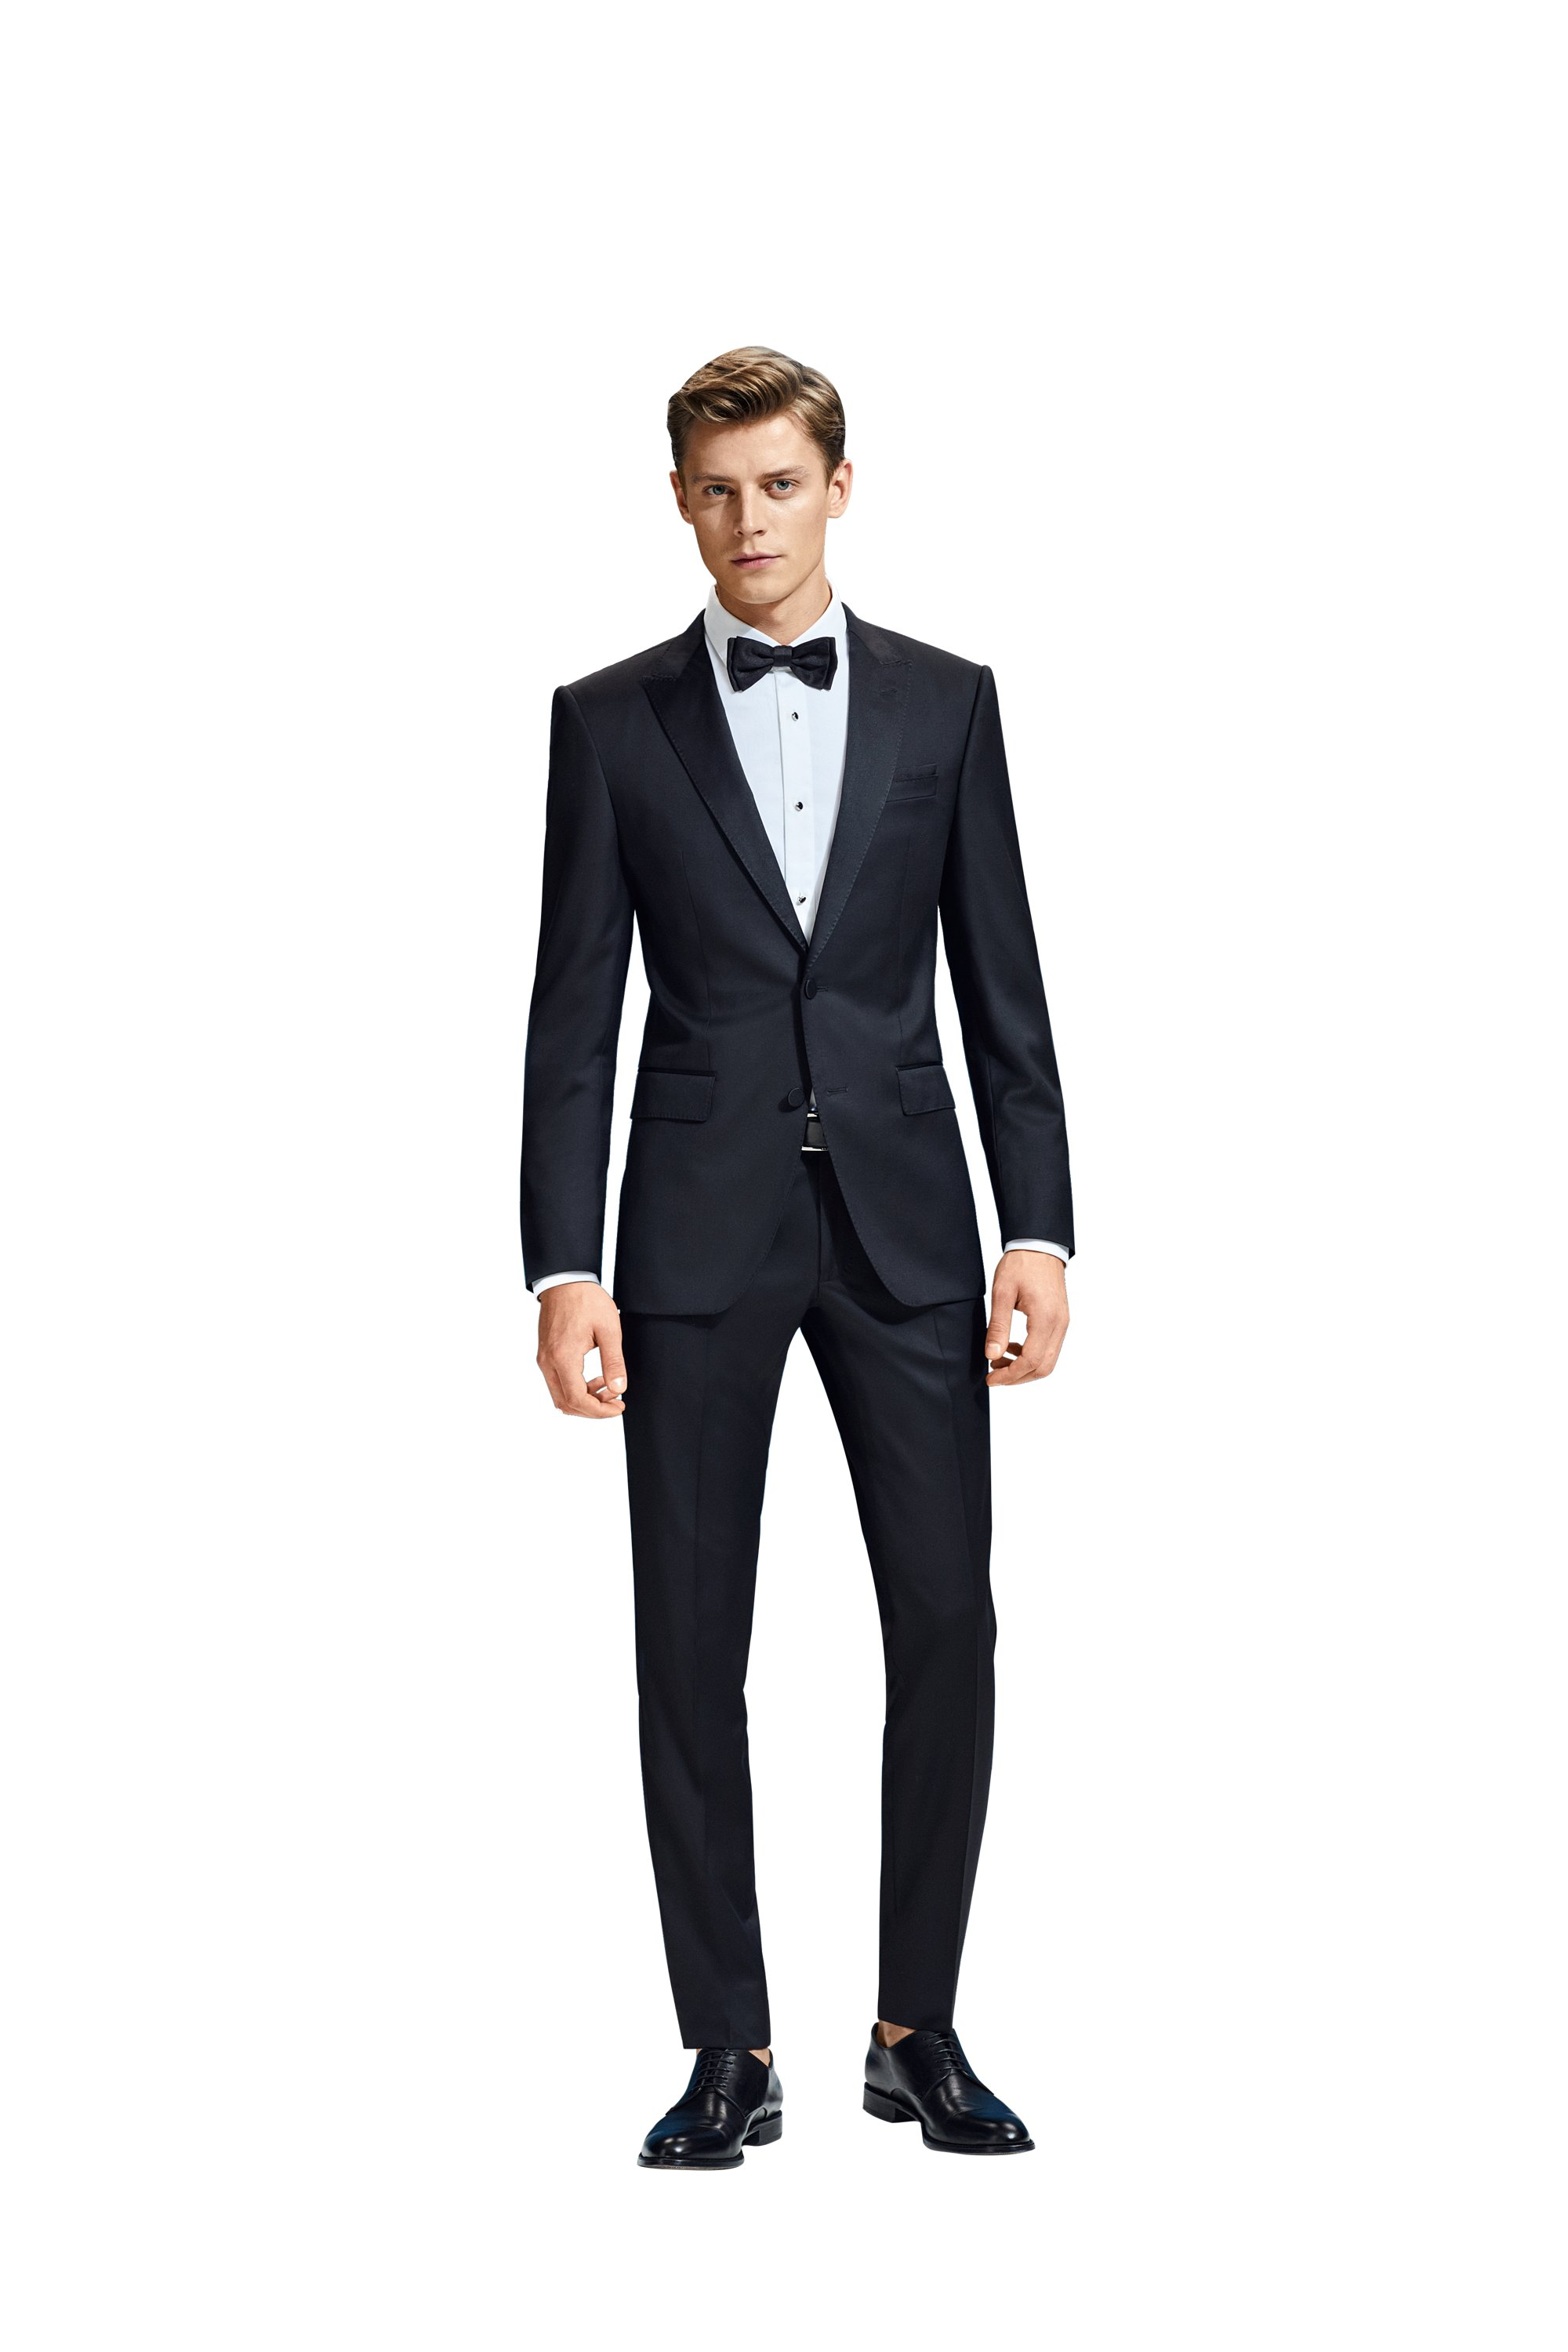 BOSS_Men_S17SR_wedding_Look_45